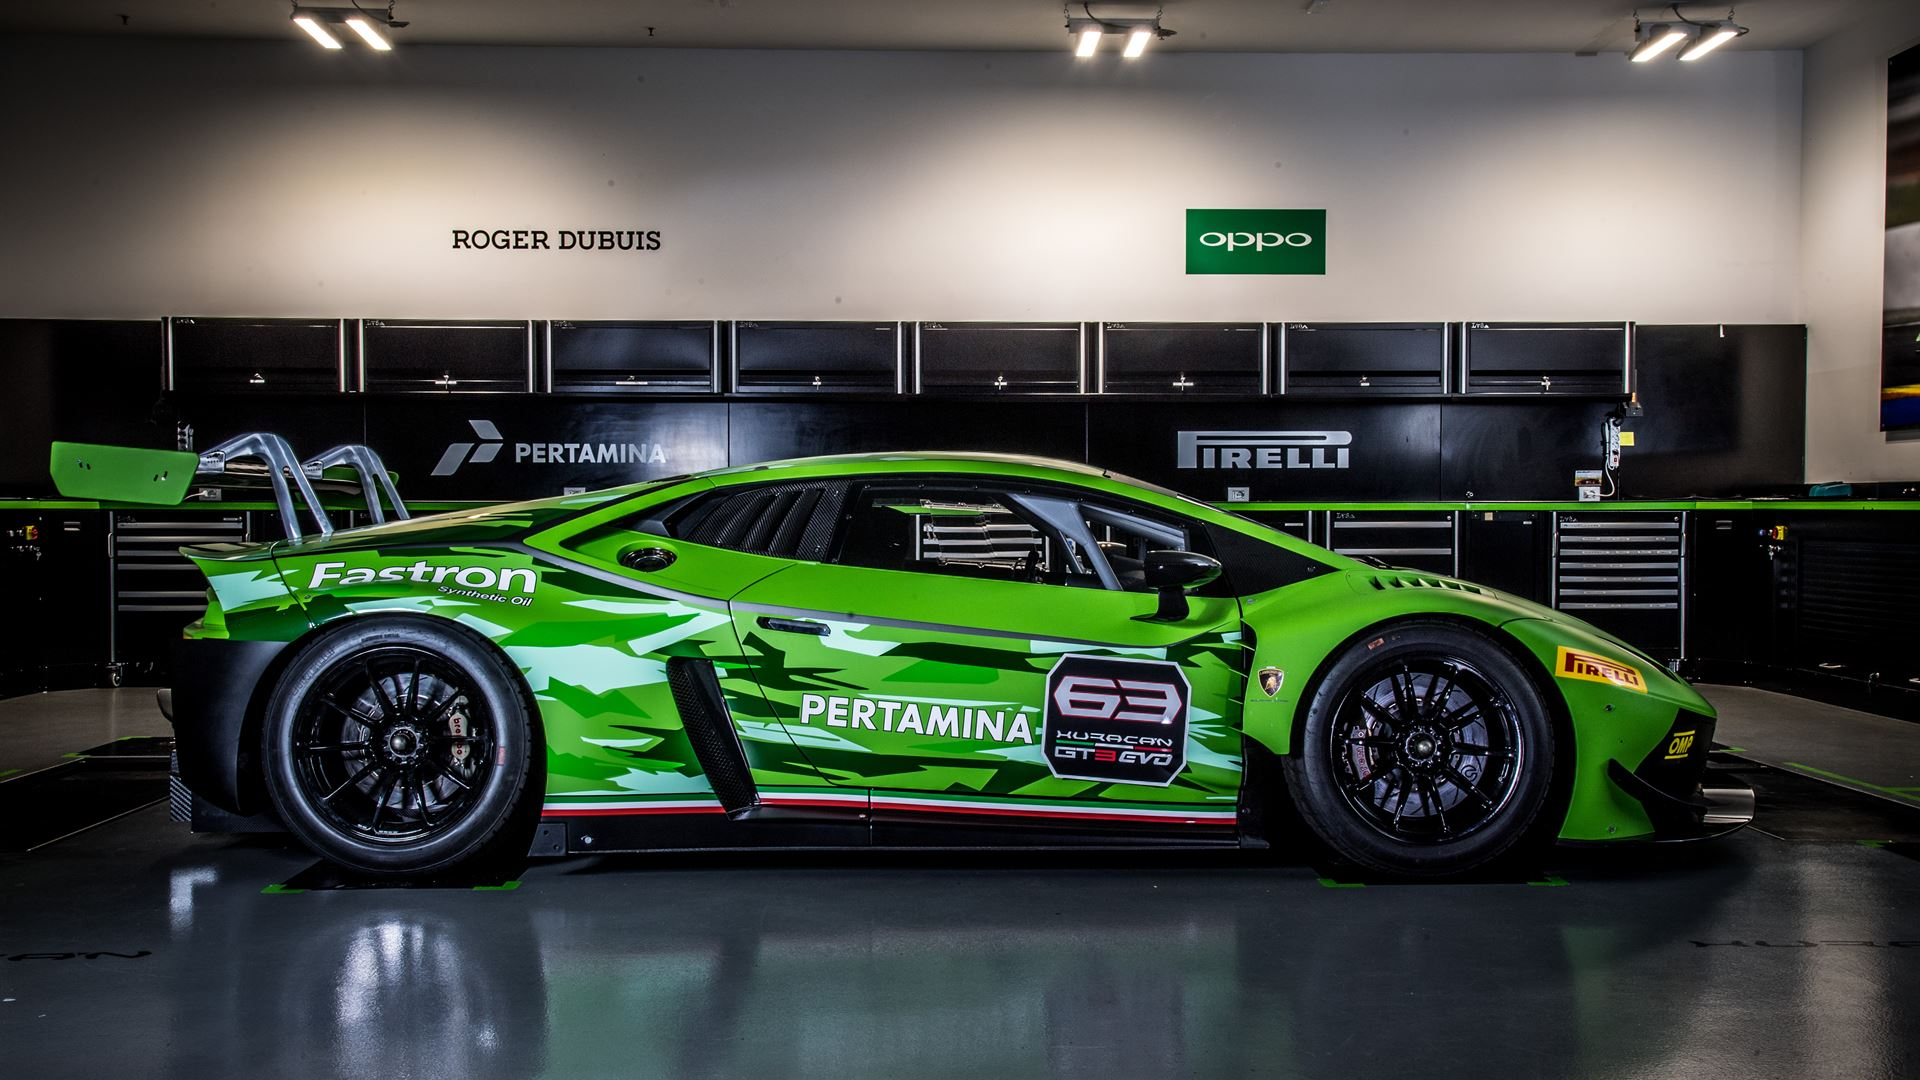 Lamborghini: the recent records and firsts you might not know about. From motorsport victories to the first automotive tests in space - Image 2